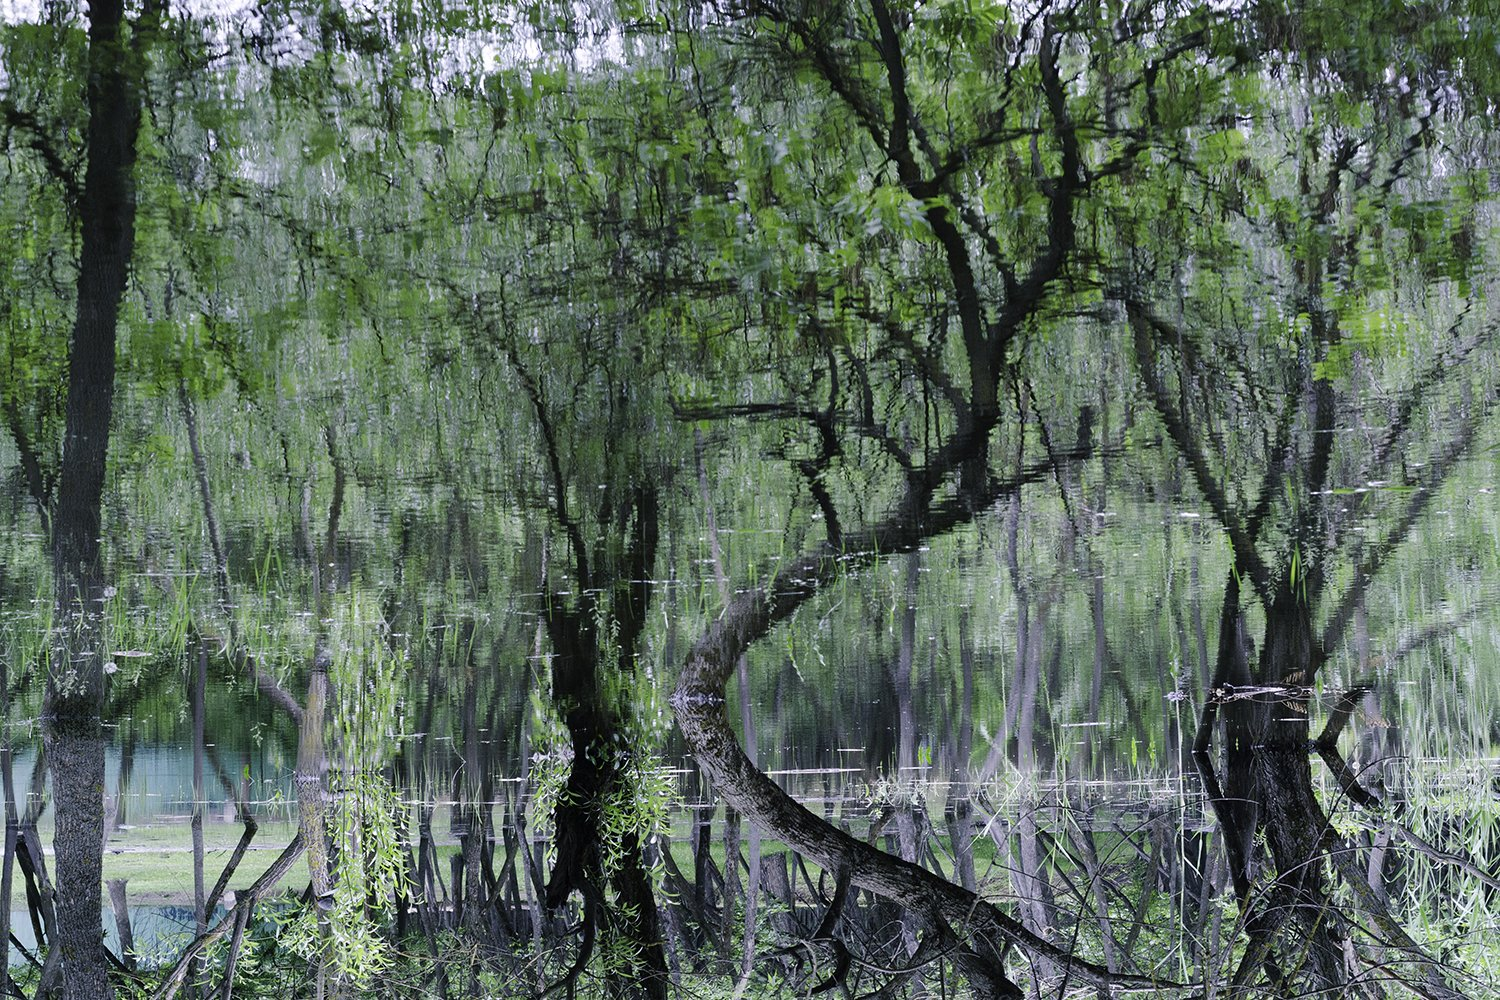 Twisting trees. Green forest. Abstraction. Reflection. example image 1